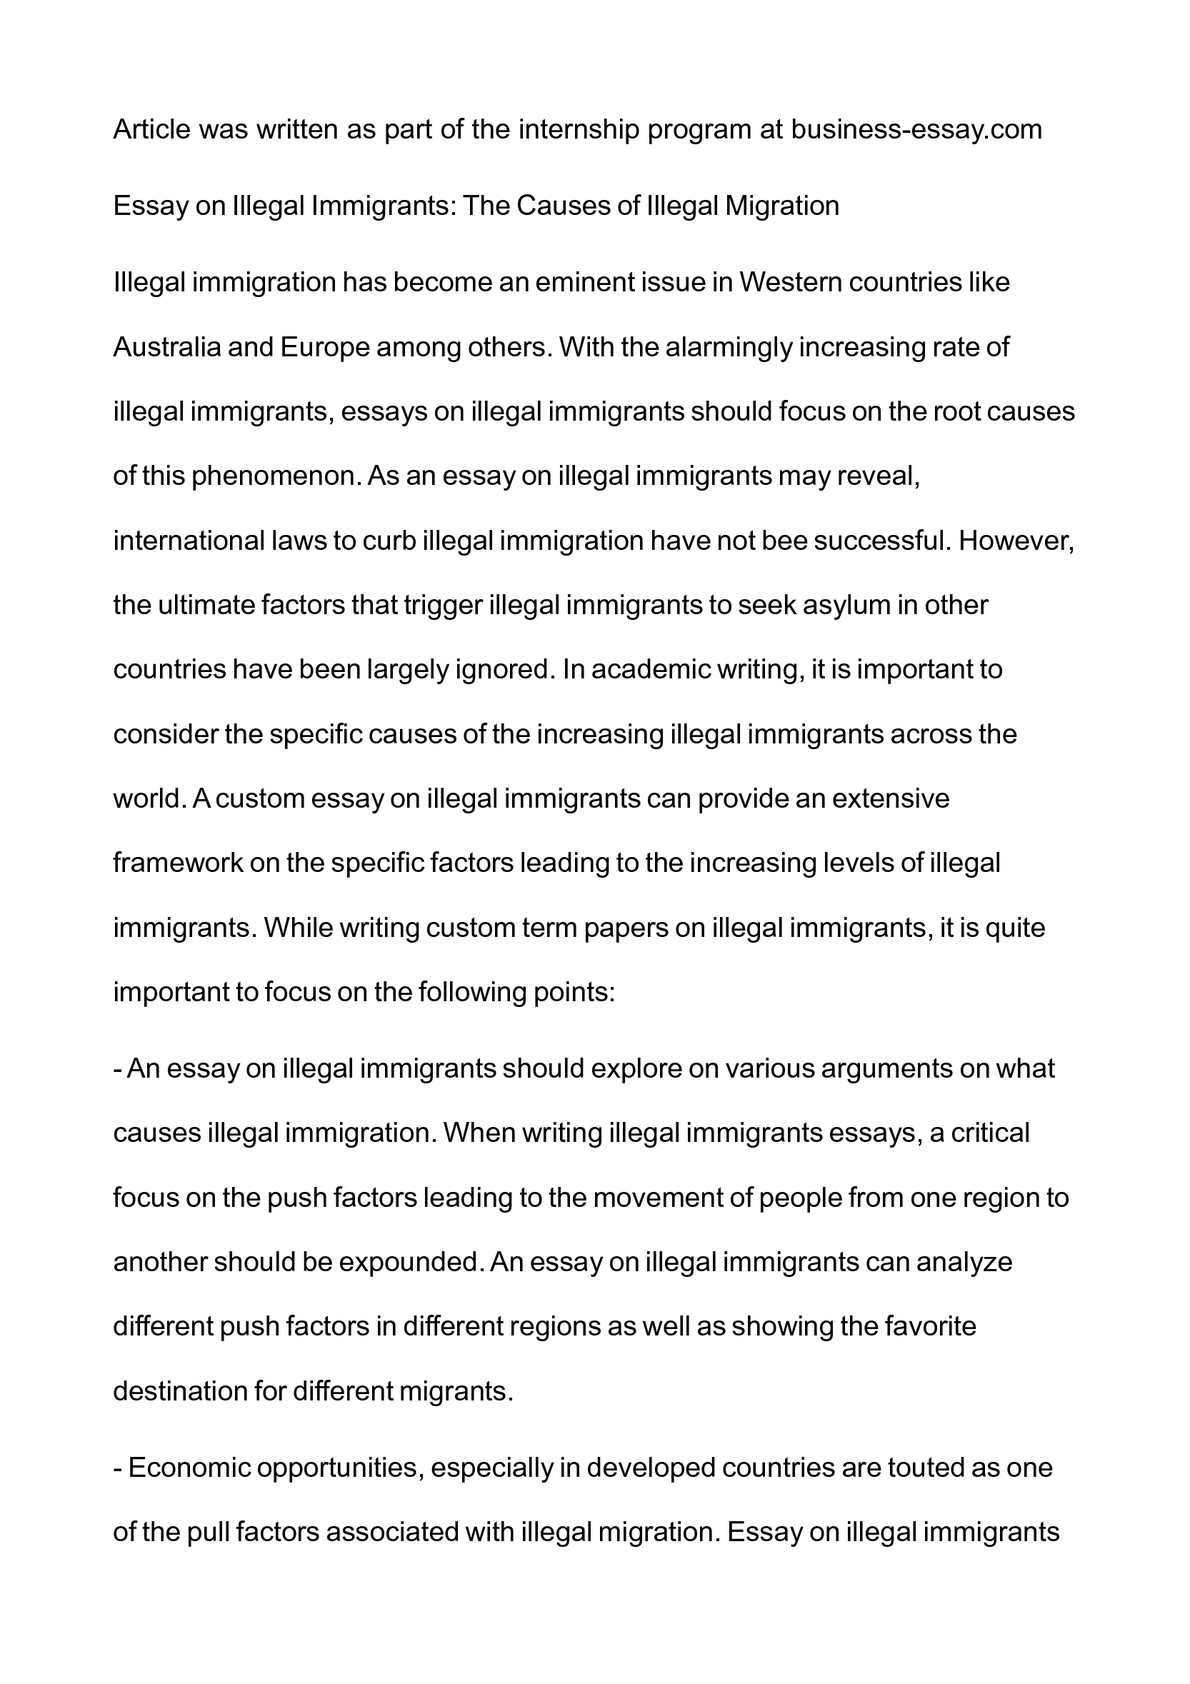 illegal immigration essay calamatildecopyo essay on illegal immigrants the causes of illegal migration